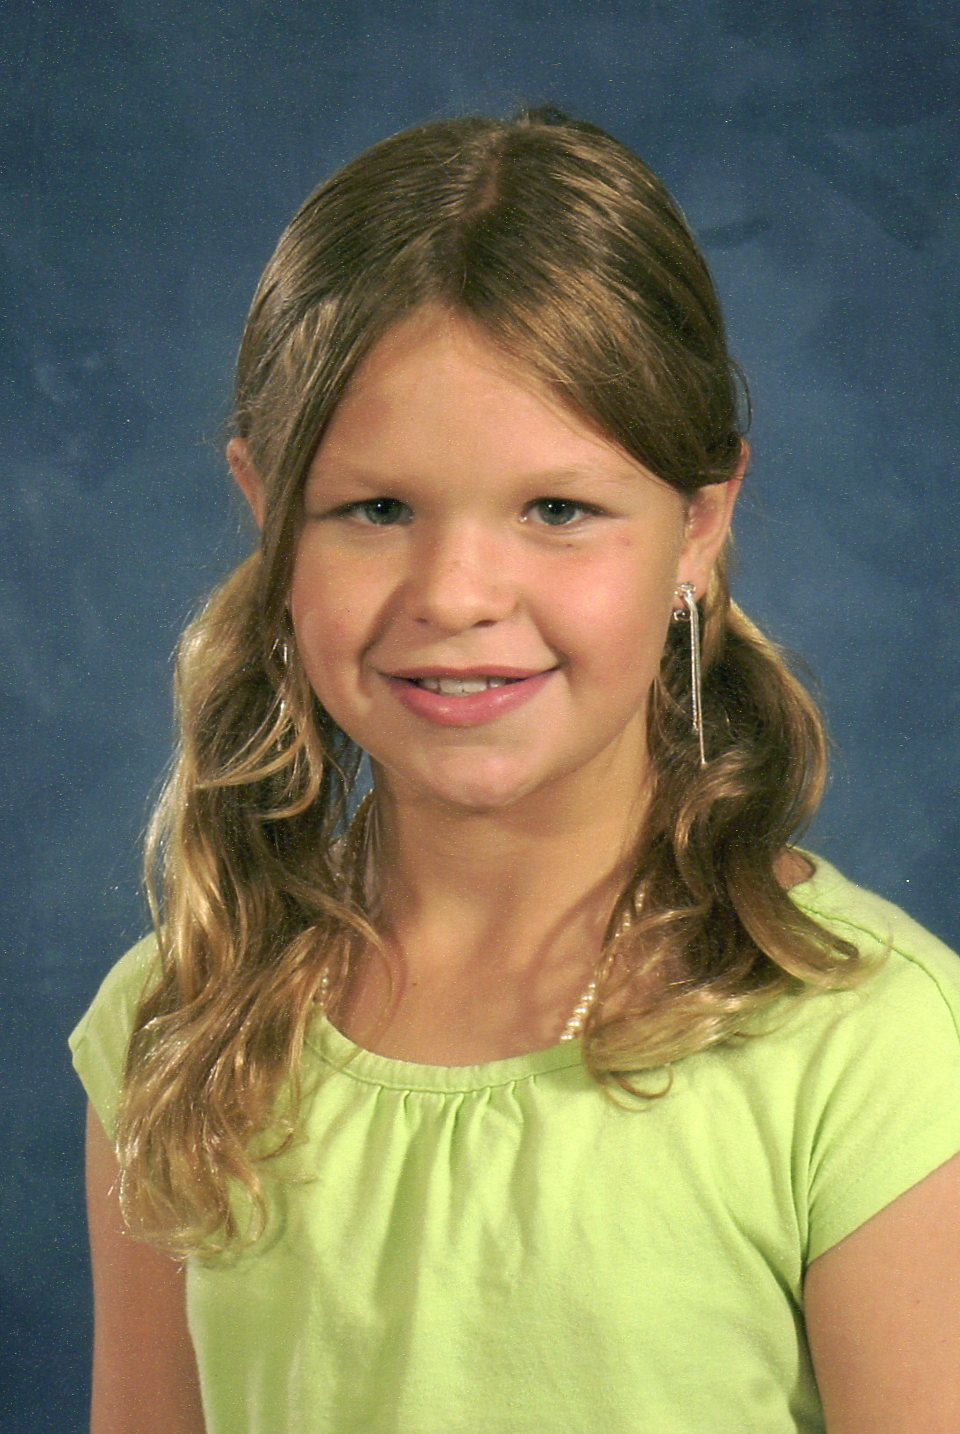 Kate, age 9 (almost 10), Fourth Grade, B.F. Day Elementary School, Fall of 2008.